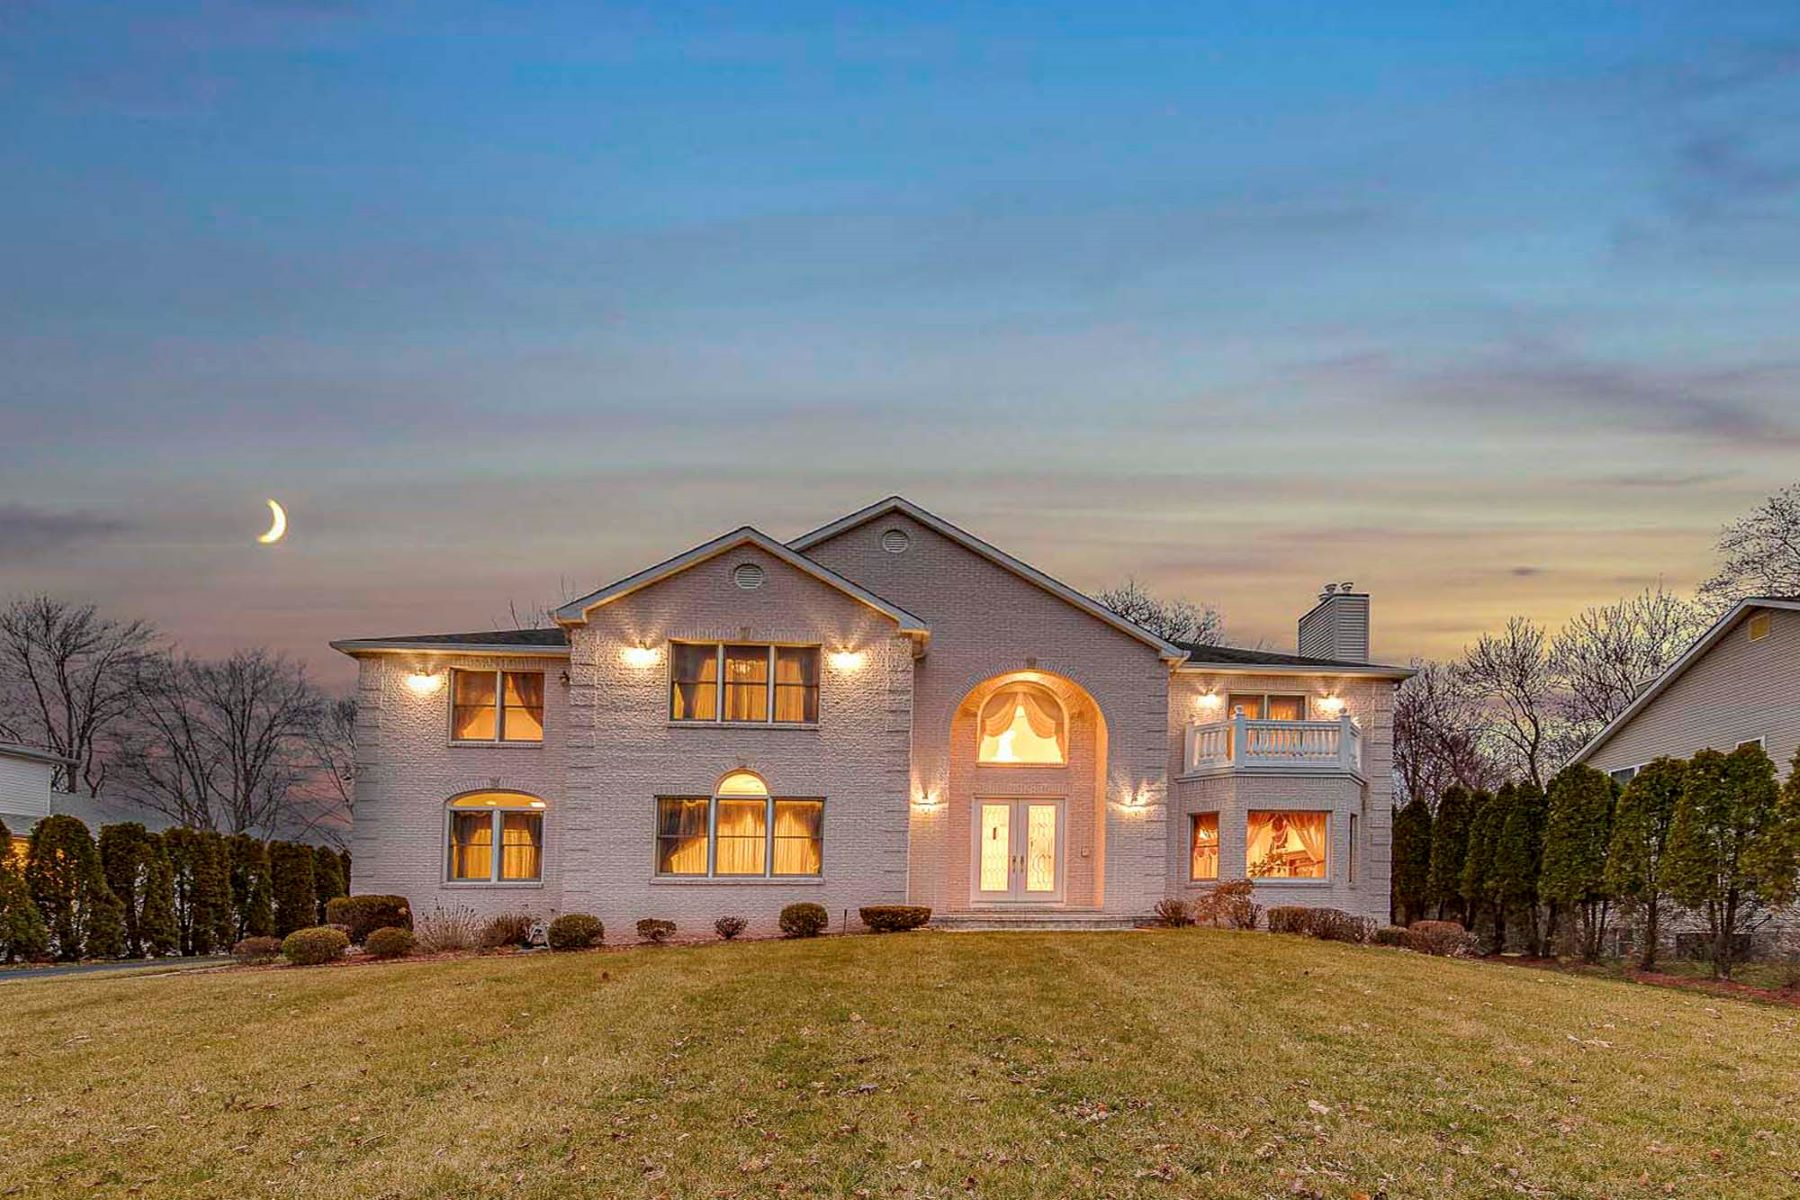 Single Family Homes for Active at Luxury Home 720 Pascack Rd Paramus, New Jersey 07652 United States